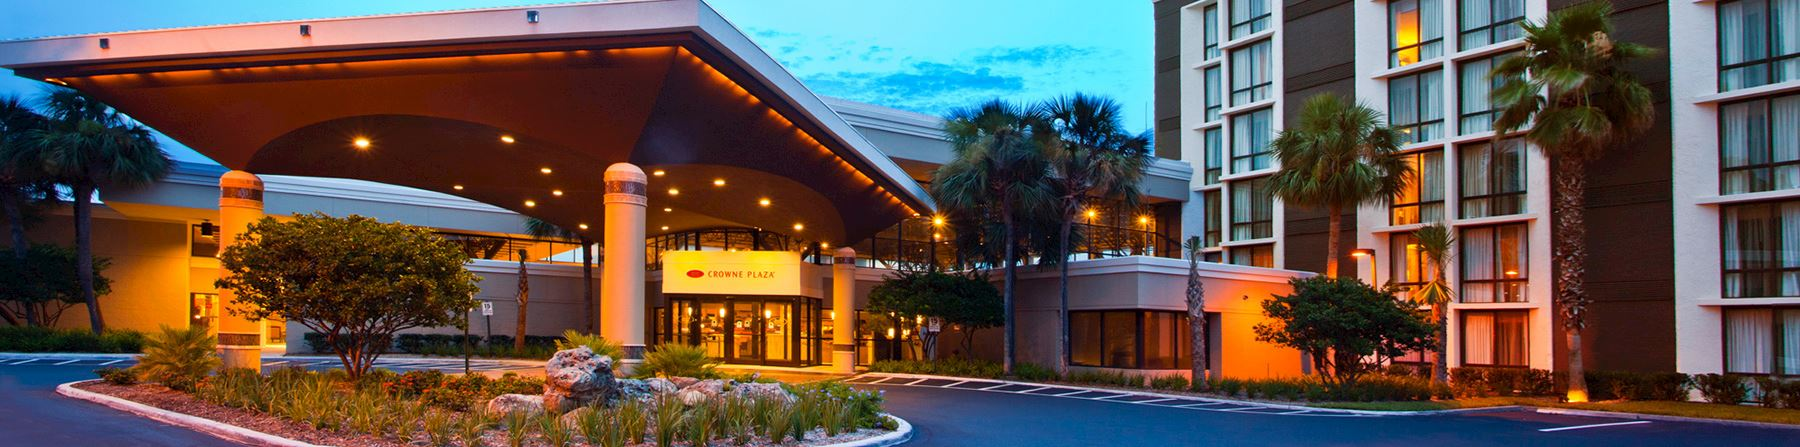 Location of Crowne Plaza Jacksonville Airport Hotel